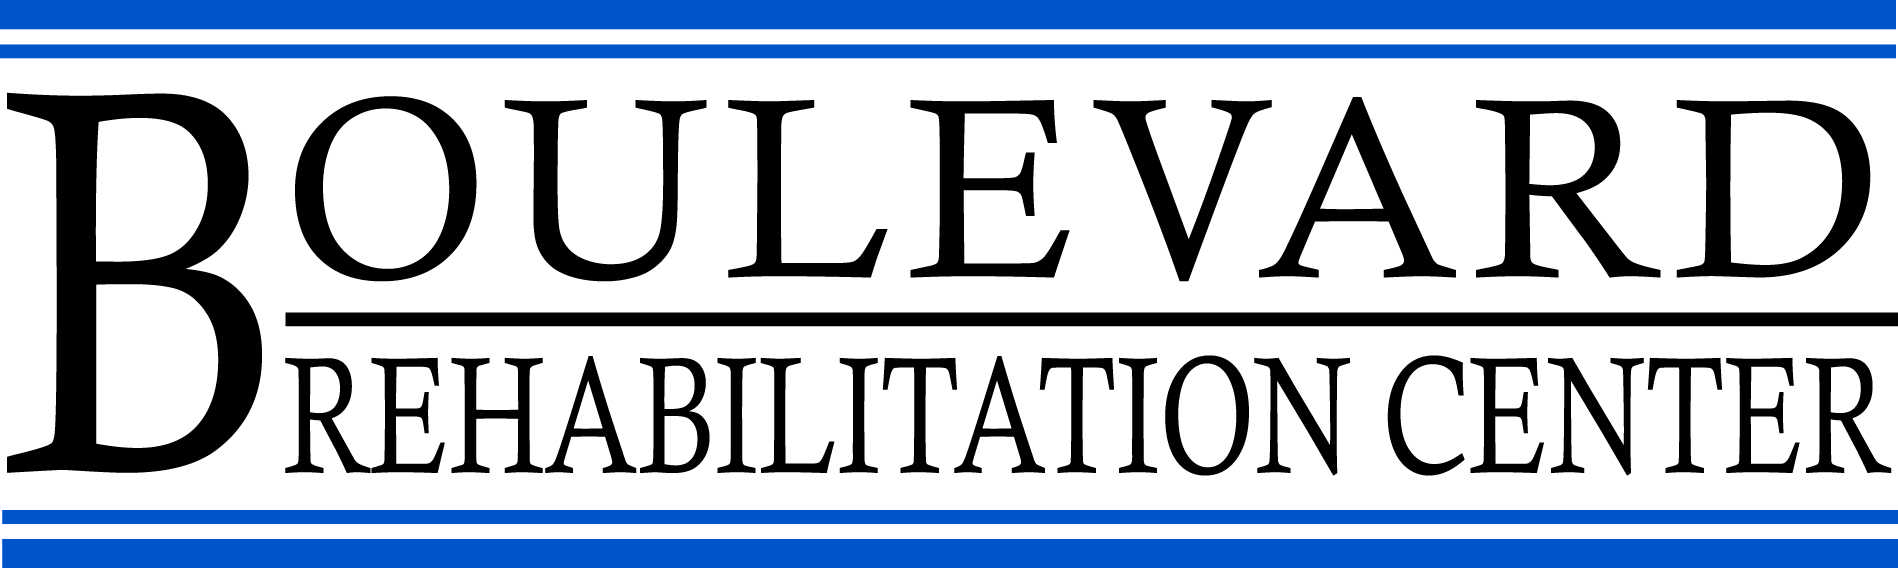 Boulevard Rehabilitation Center logo